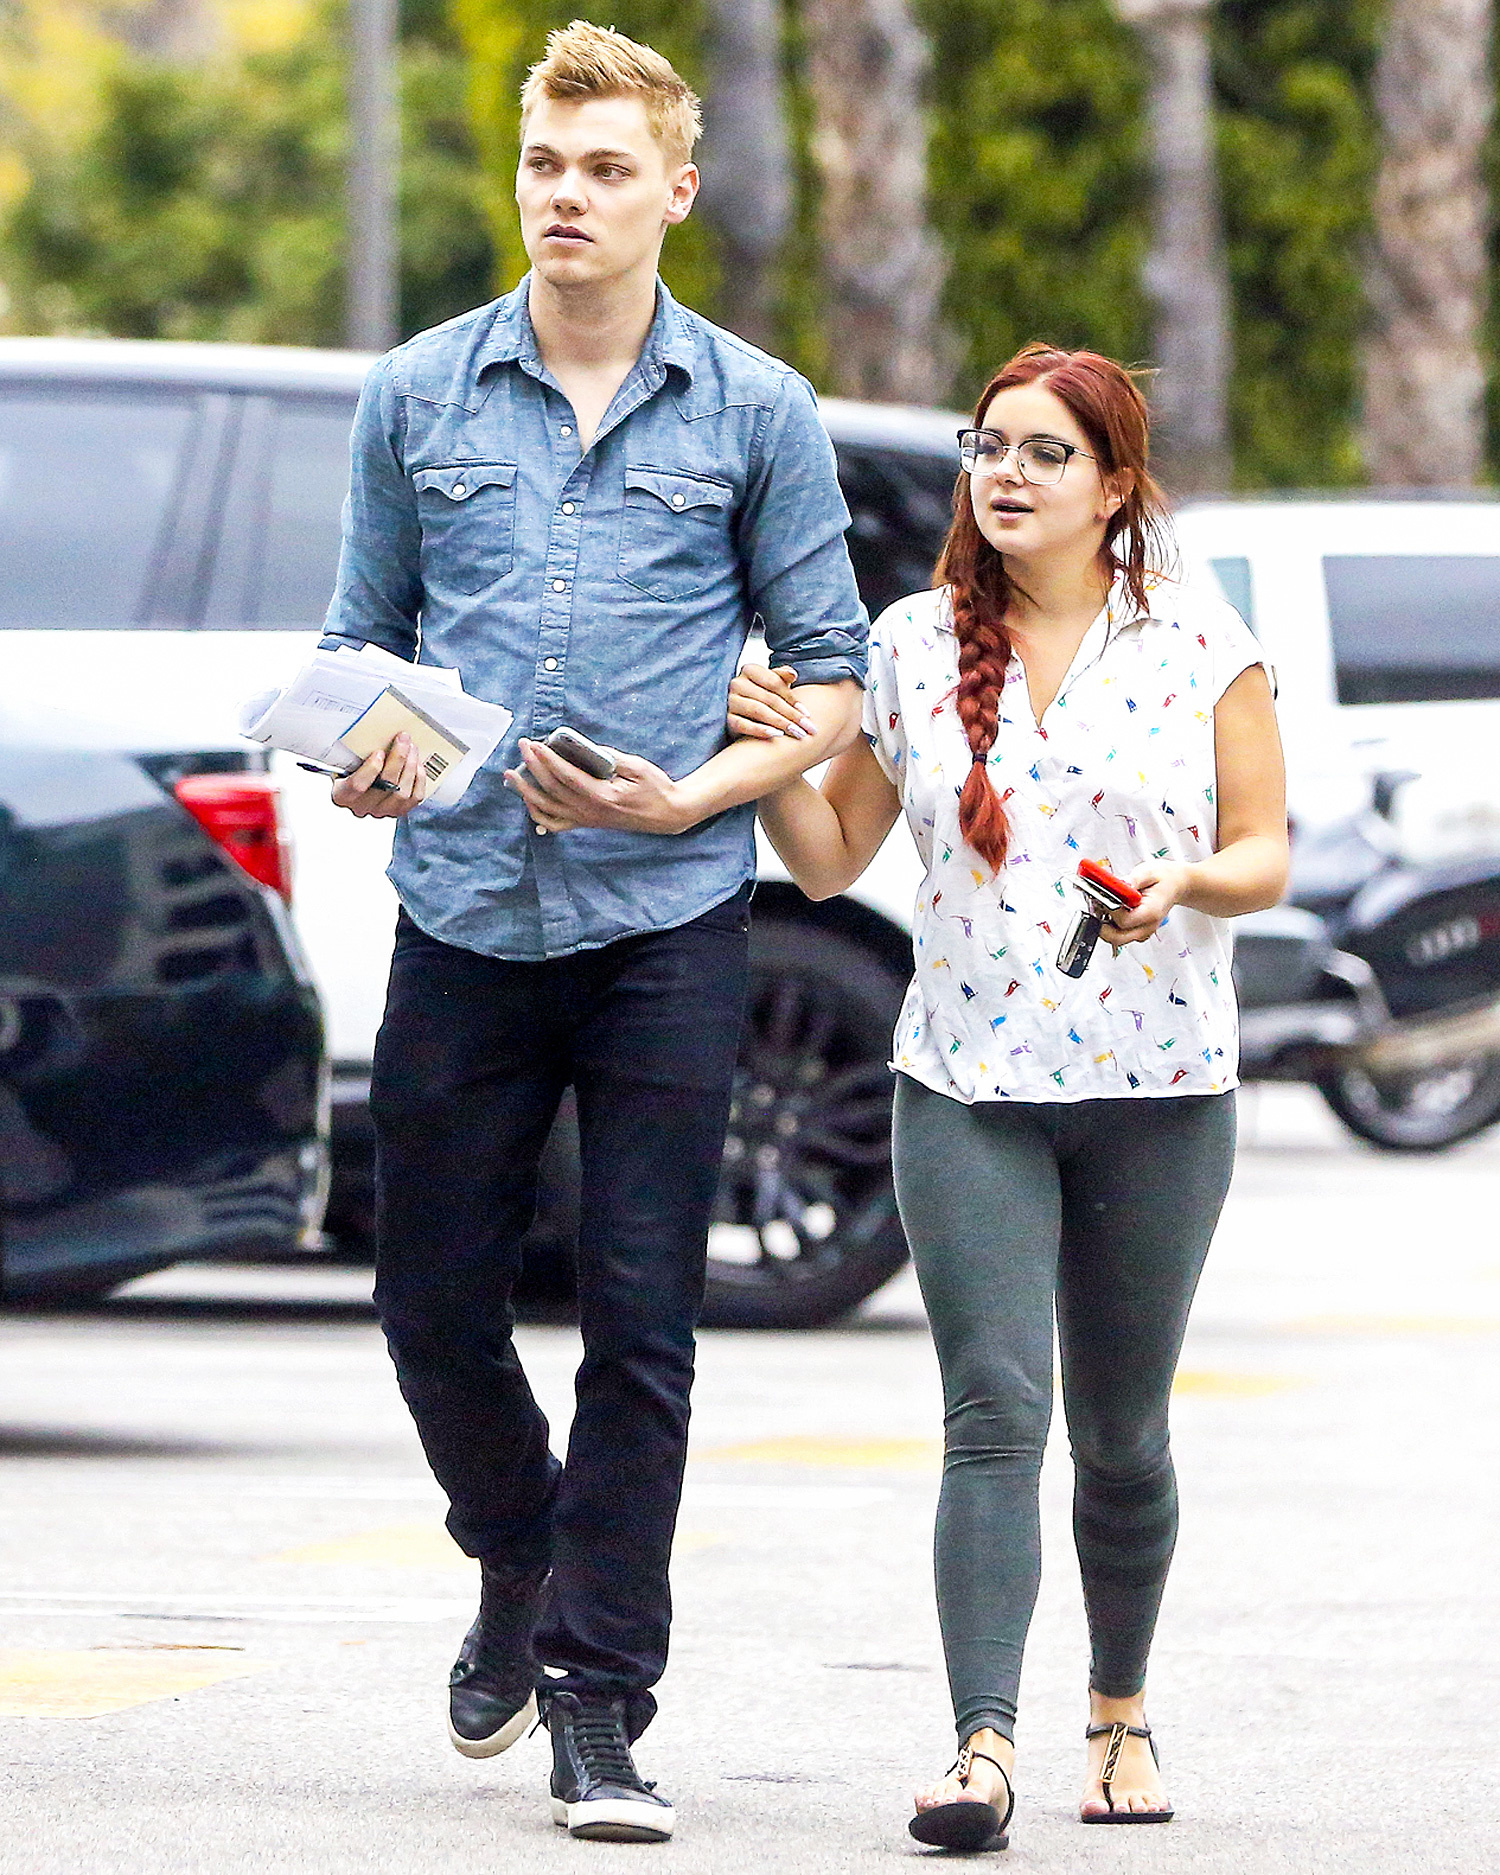 Ariel Winter and Levi Meaden Seen Walking Arm in Arm While Out and About